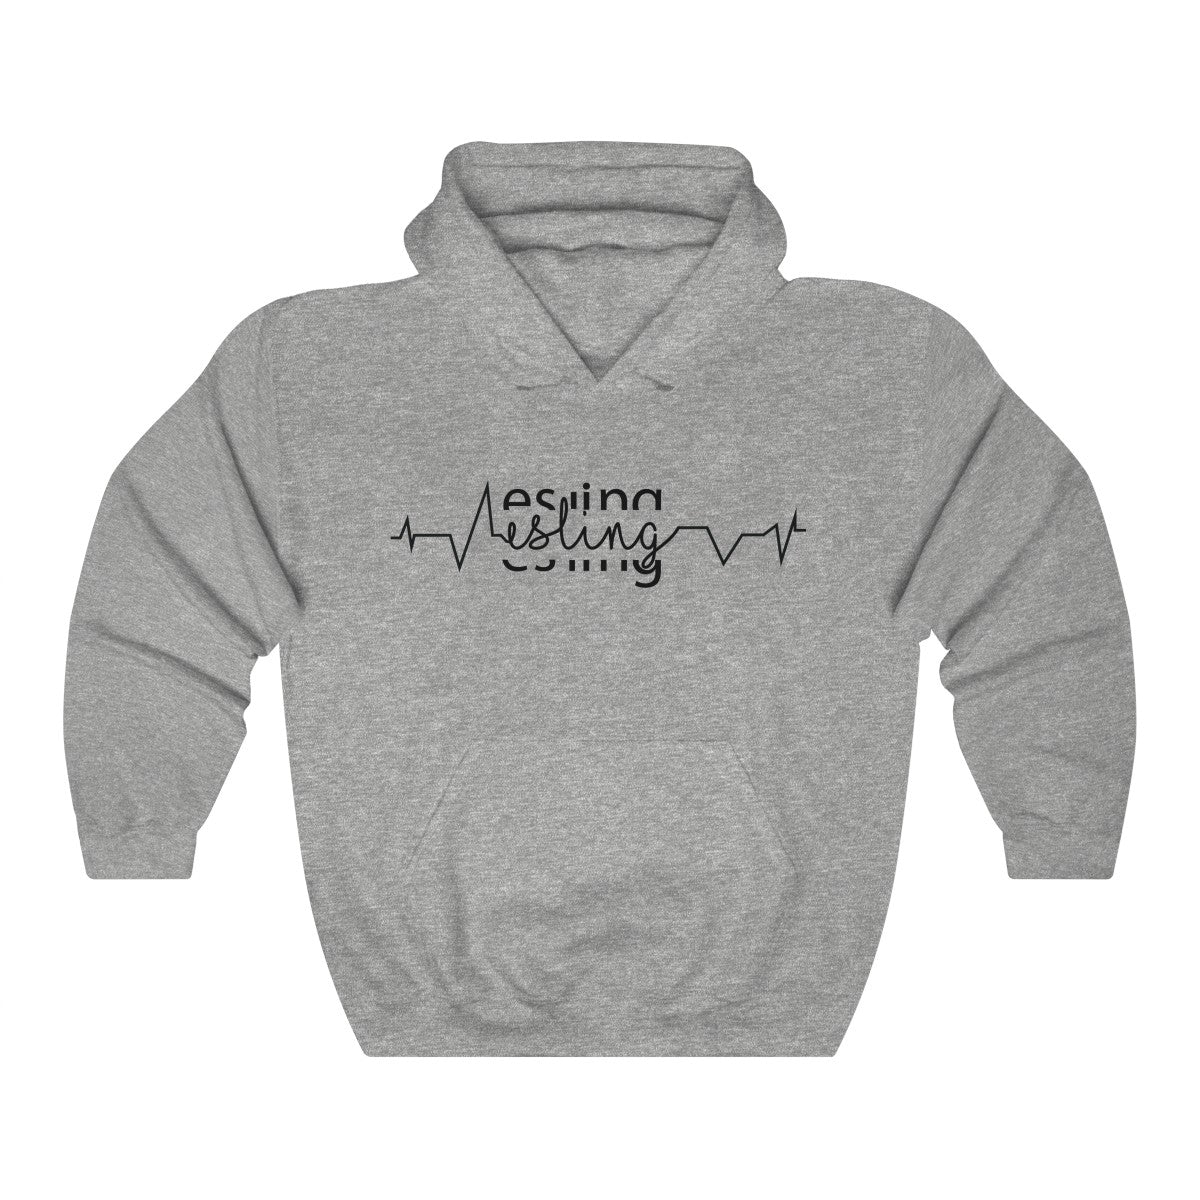 Ryan Esling Hooded Sweatshirt